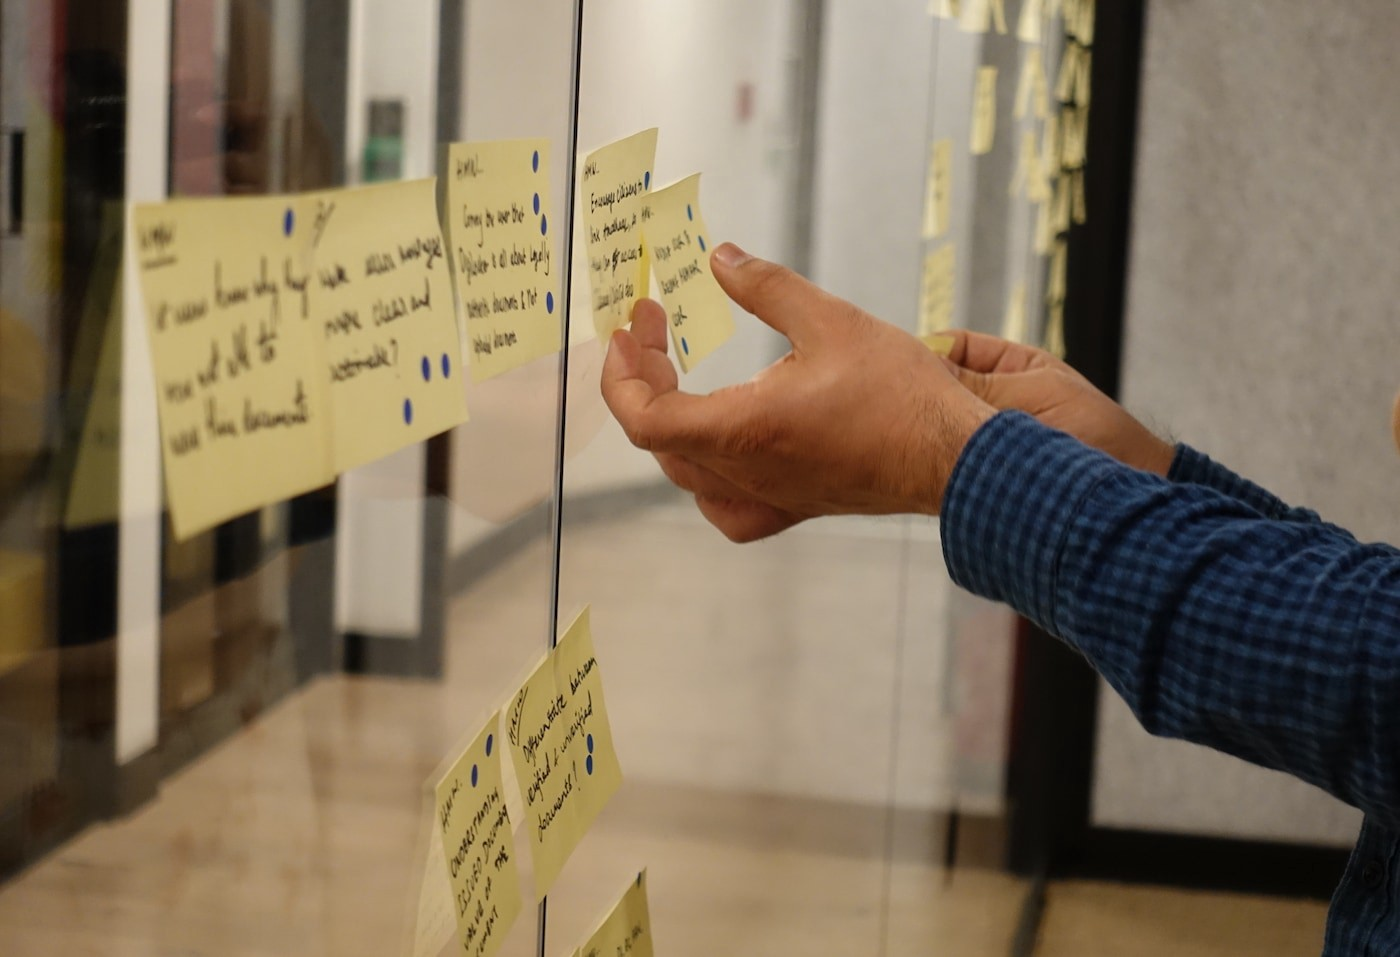 Rearranging Post-it notes on a glass wall during a Design Sprint